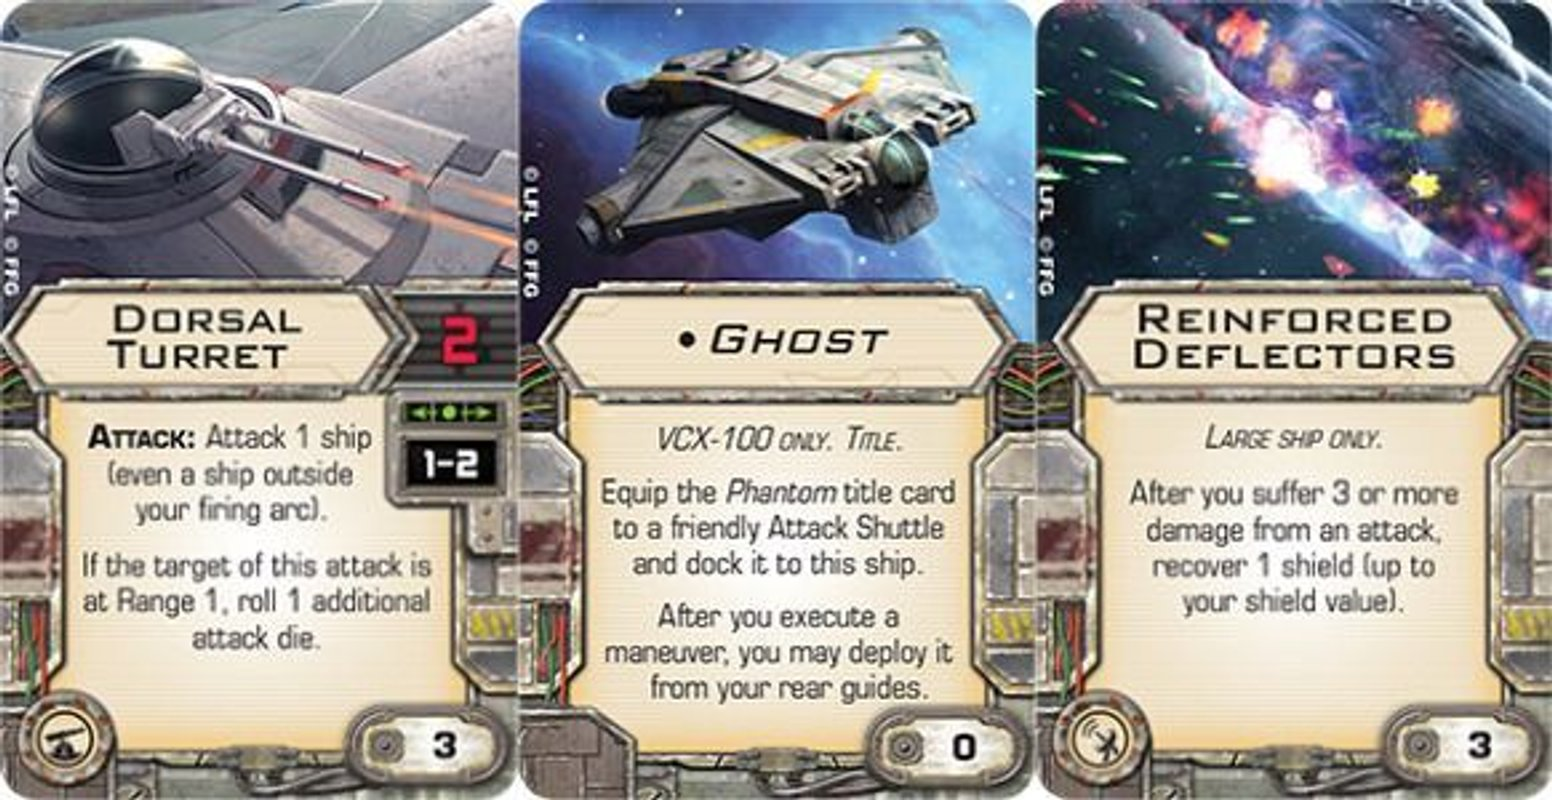 Star Wars: X-Wing Miniatures Game - Ghost Expansion Pack cards